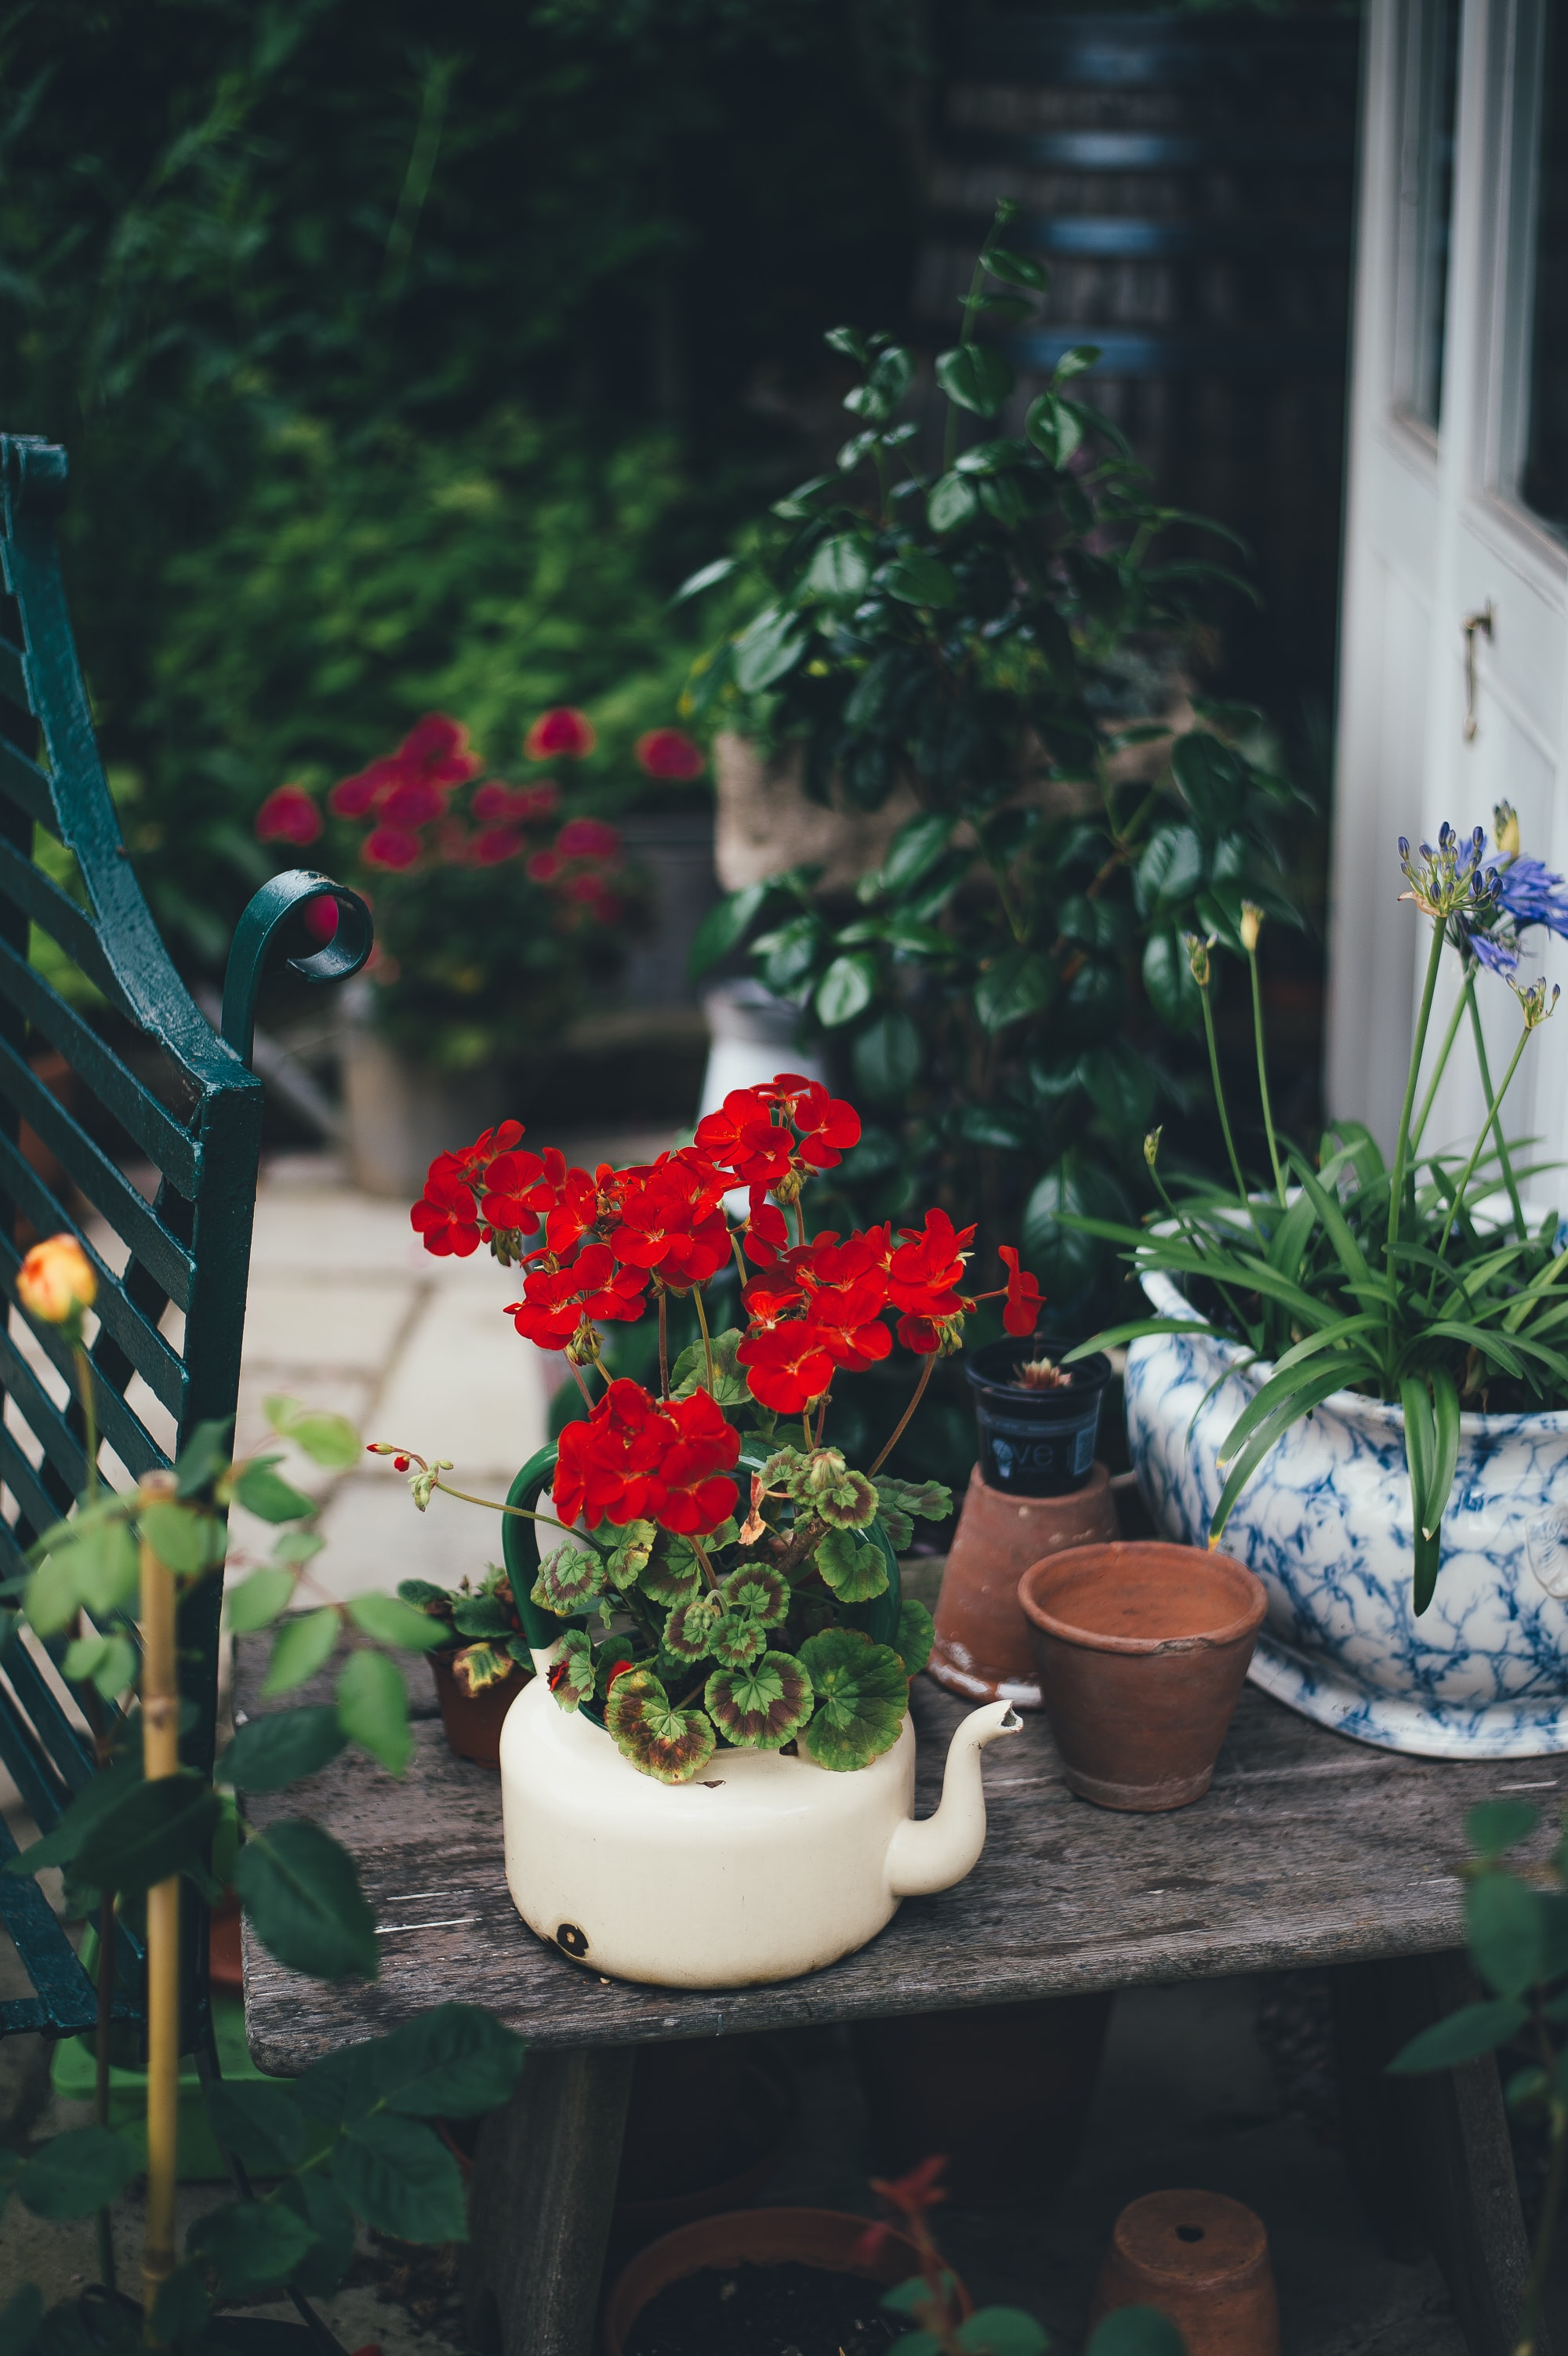 Flowers and plants in vintage pots on a front porch